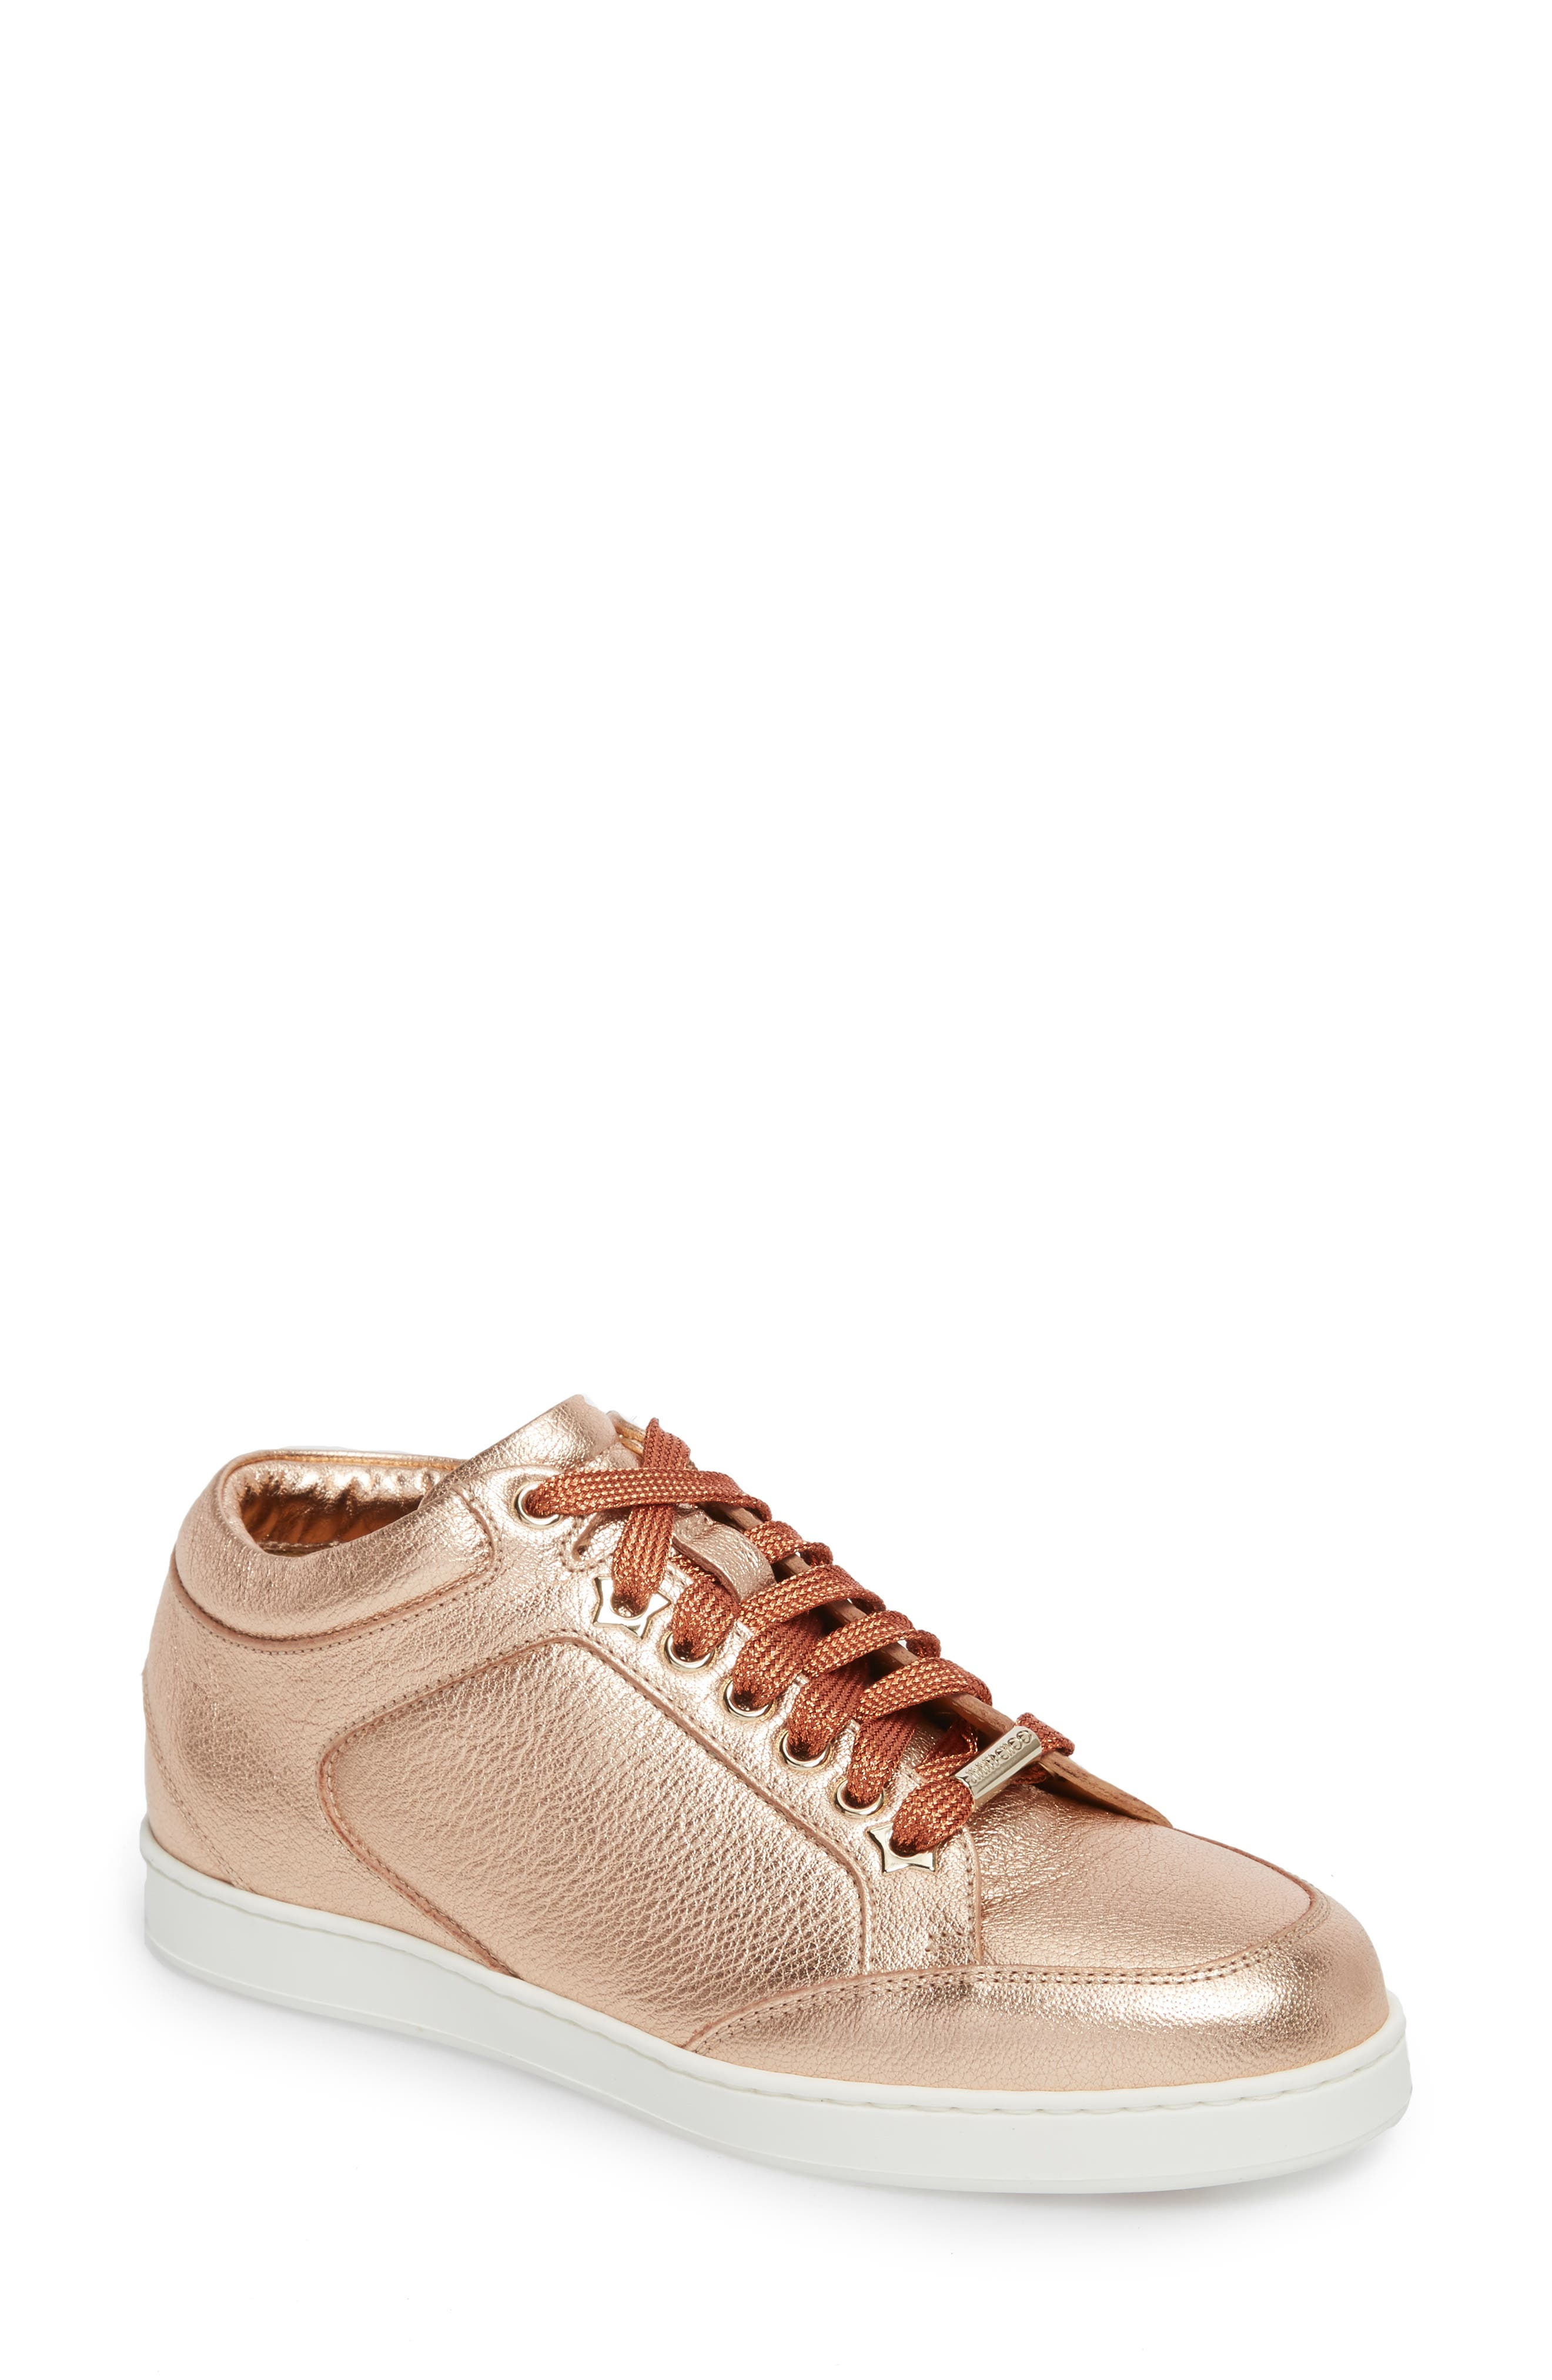 Miami Metallic Sneaker,                         Main,                         color, 680